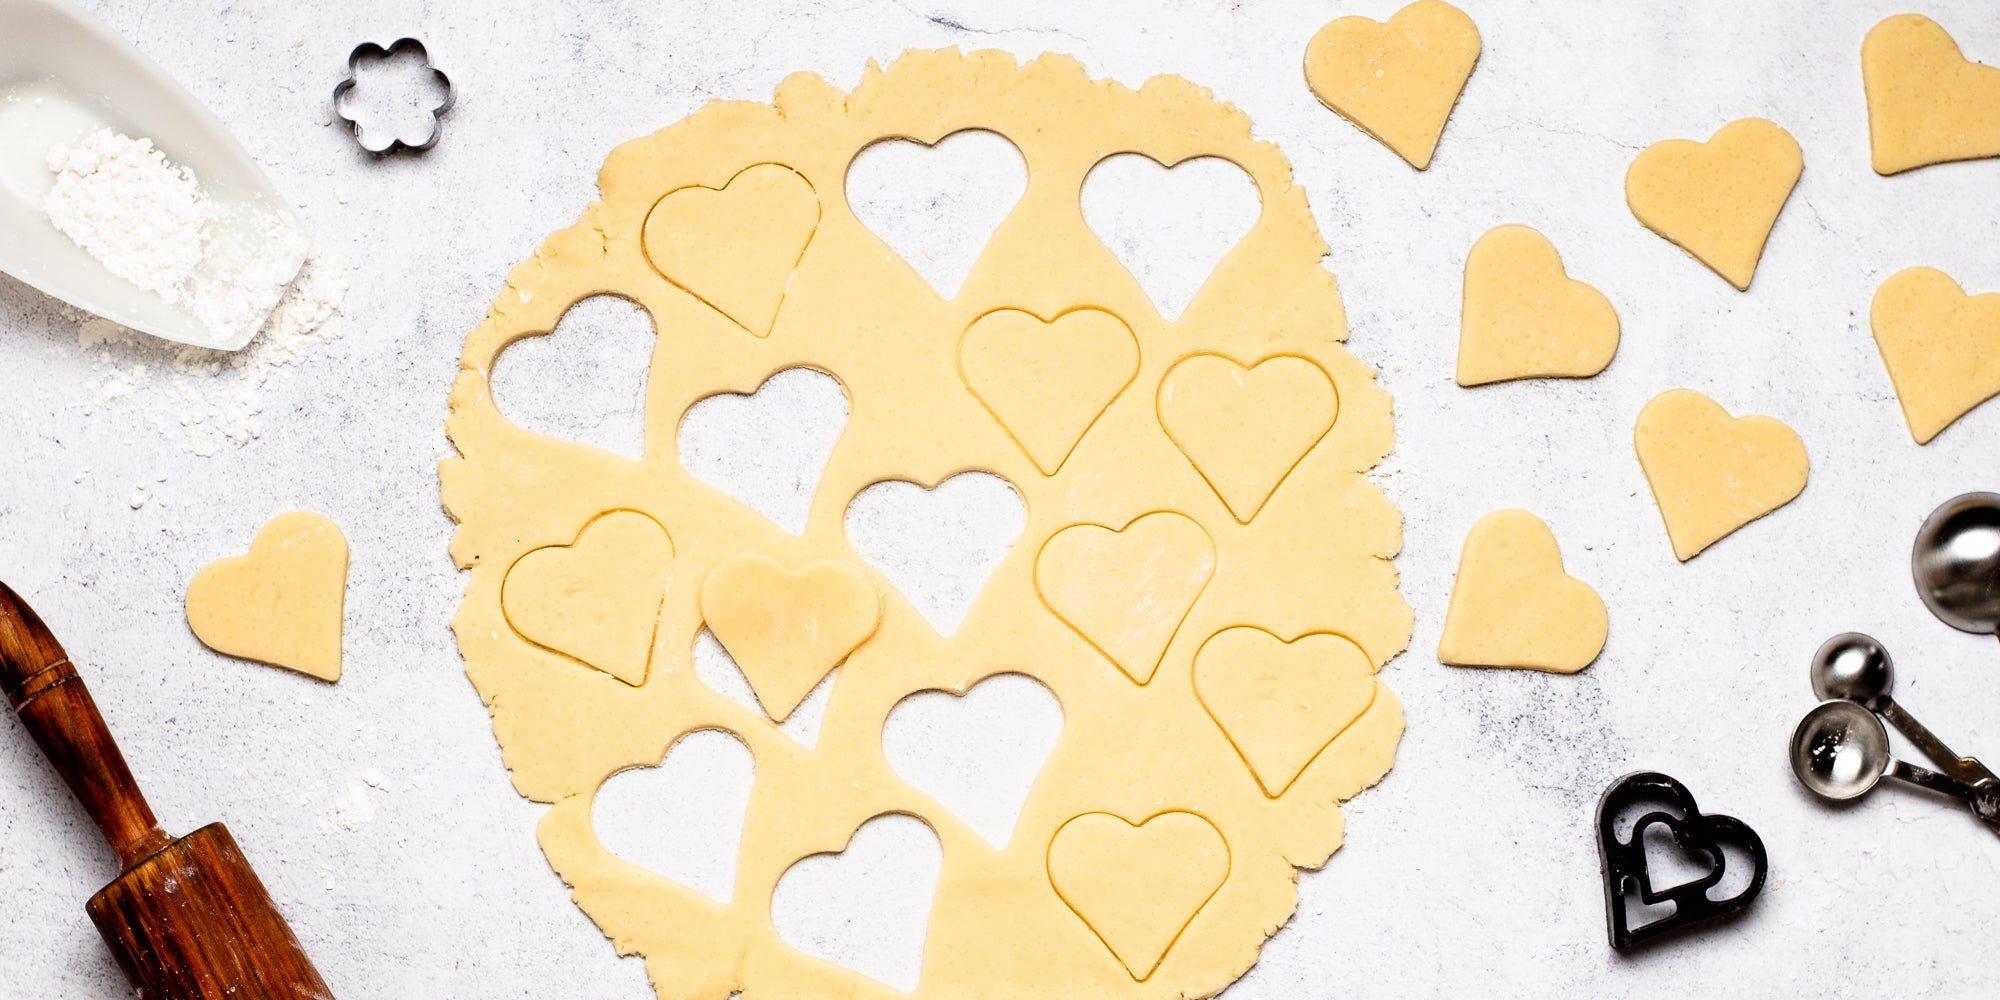 Top down view of hearts cut out in gluten free biscuit dough